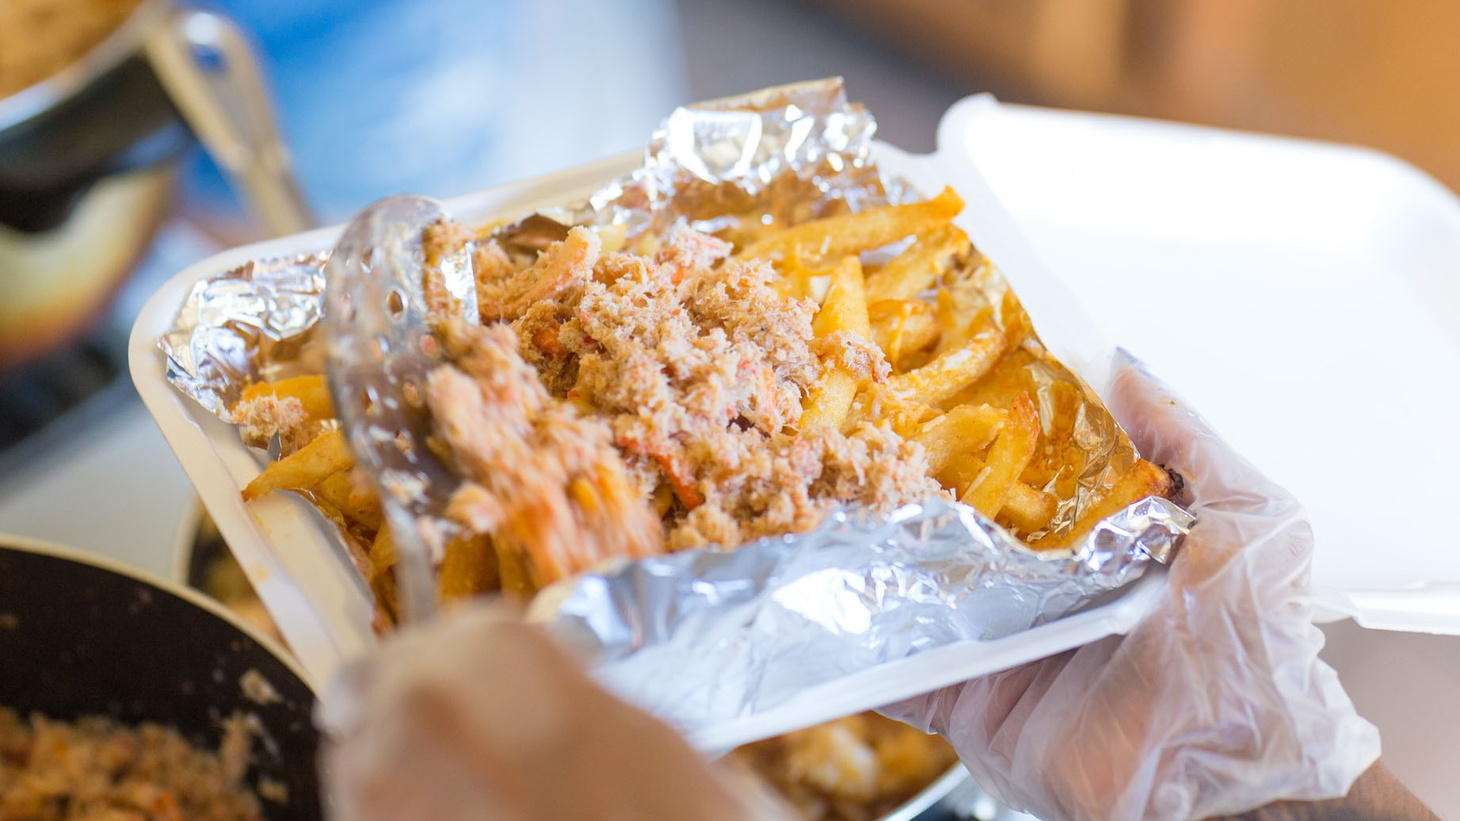 Mr. Fries Man, a business run by Craig Batiste that specializes in tasty, made-to-order fries.